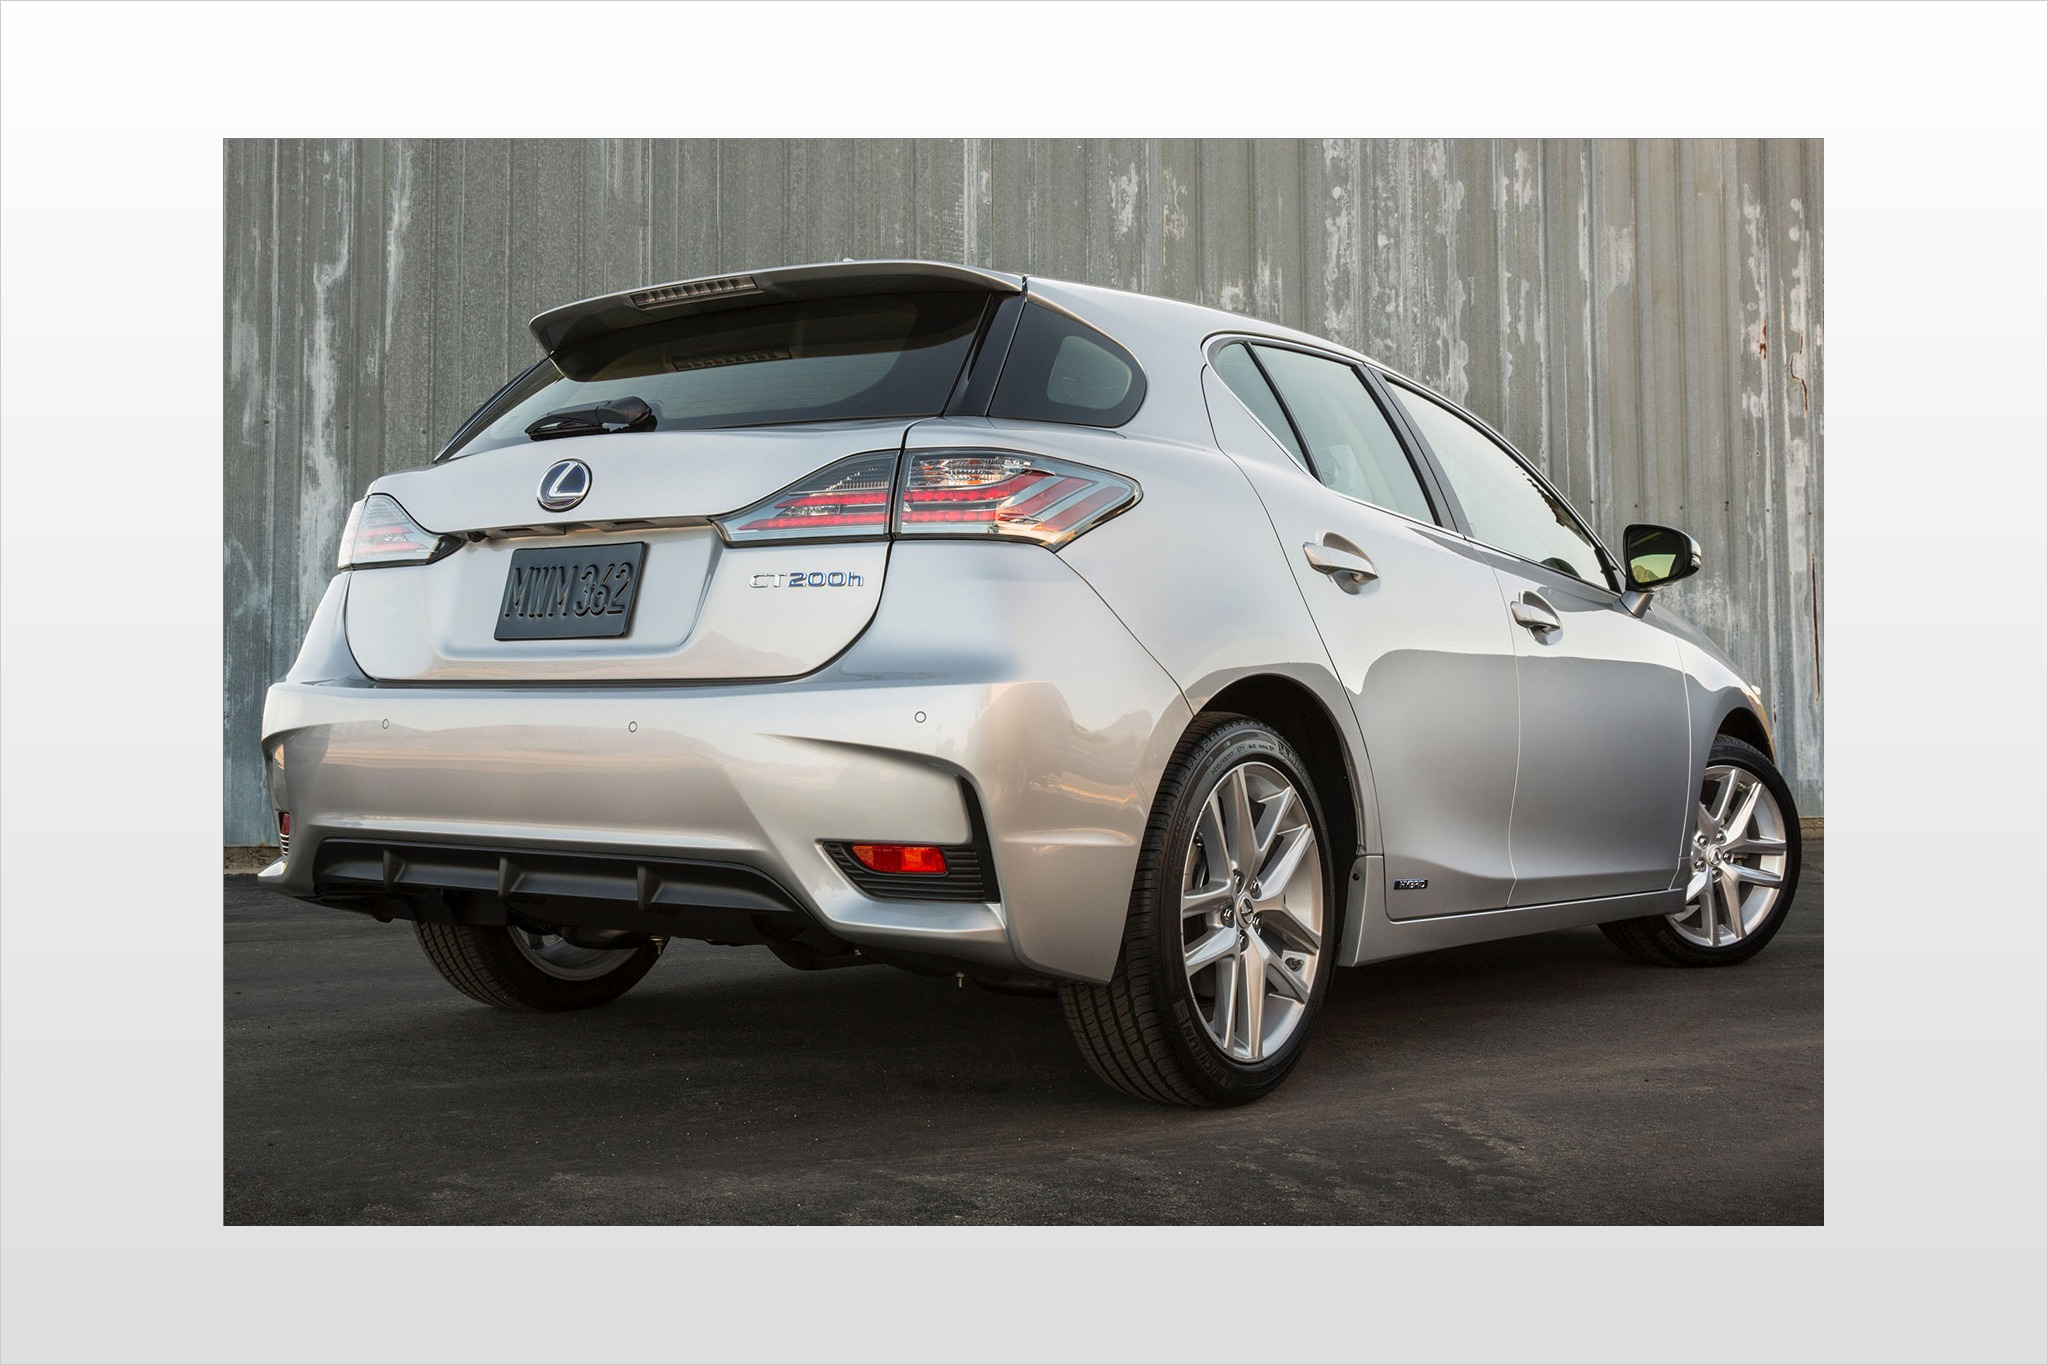 2014 Lexus CT 200h 4dr Ha interior #7